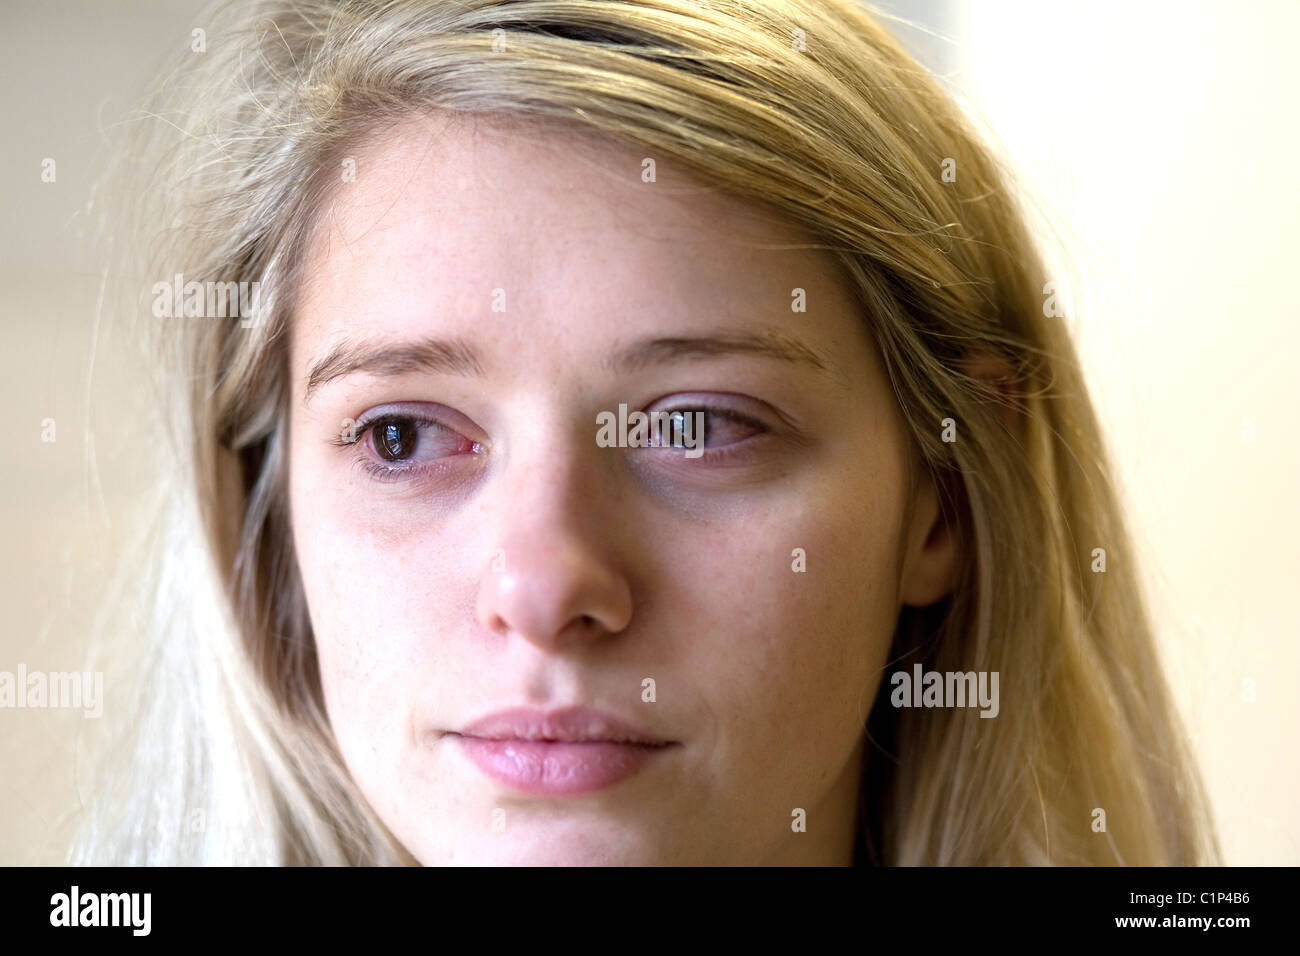 Tearful blond teenage girl, close up of face - Stock Image